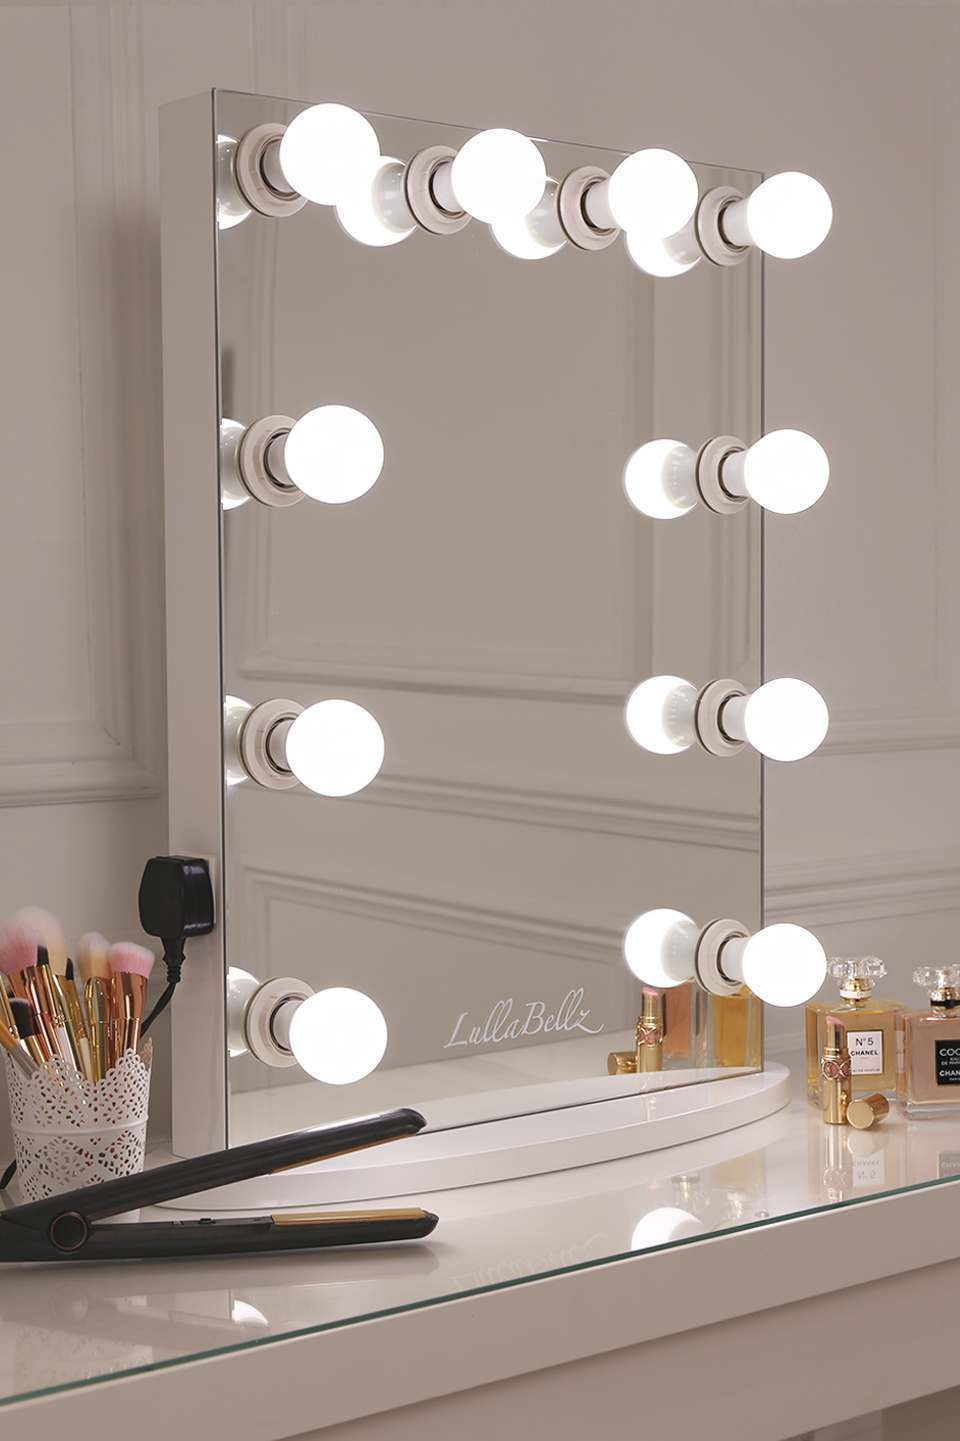 Simple sleek and stunning on your dresser Girl with LED light